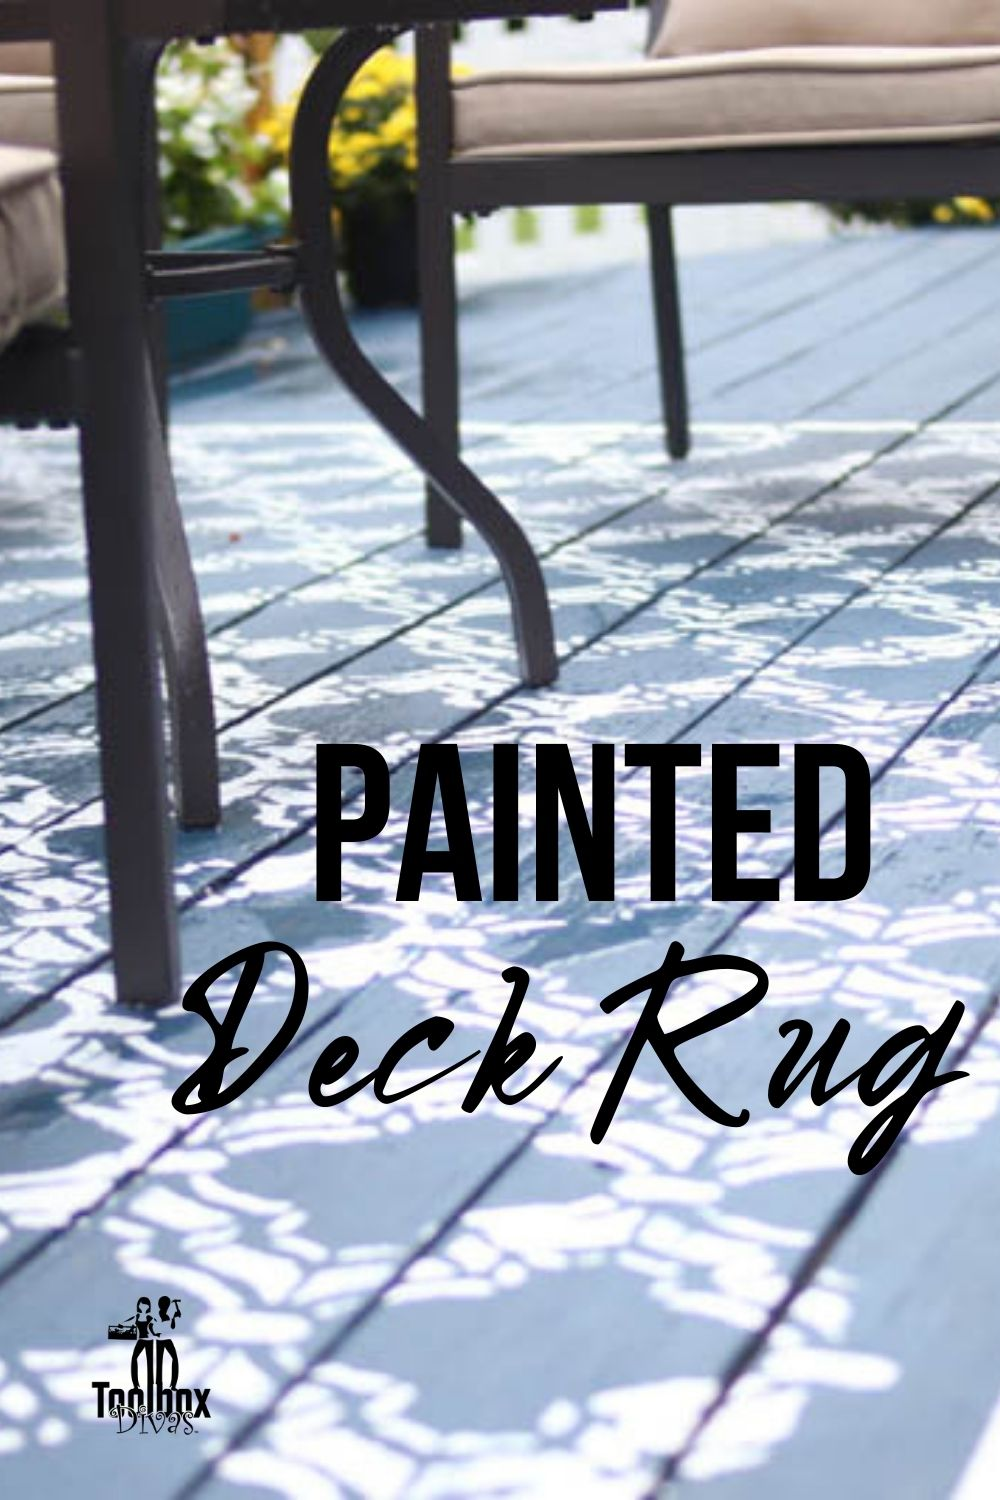 closeup of painted deck rug with text overlay